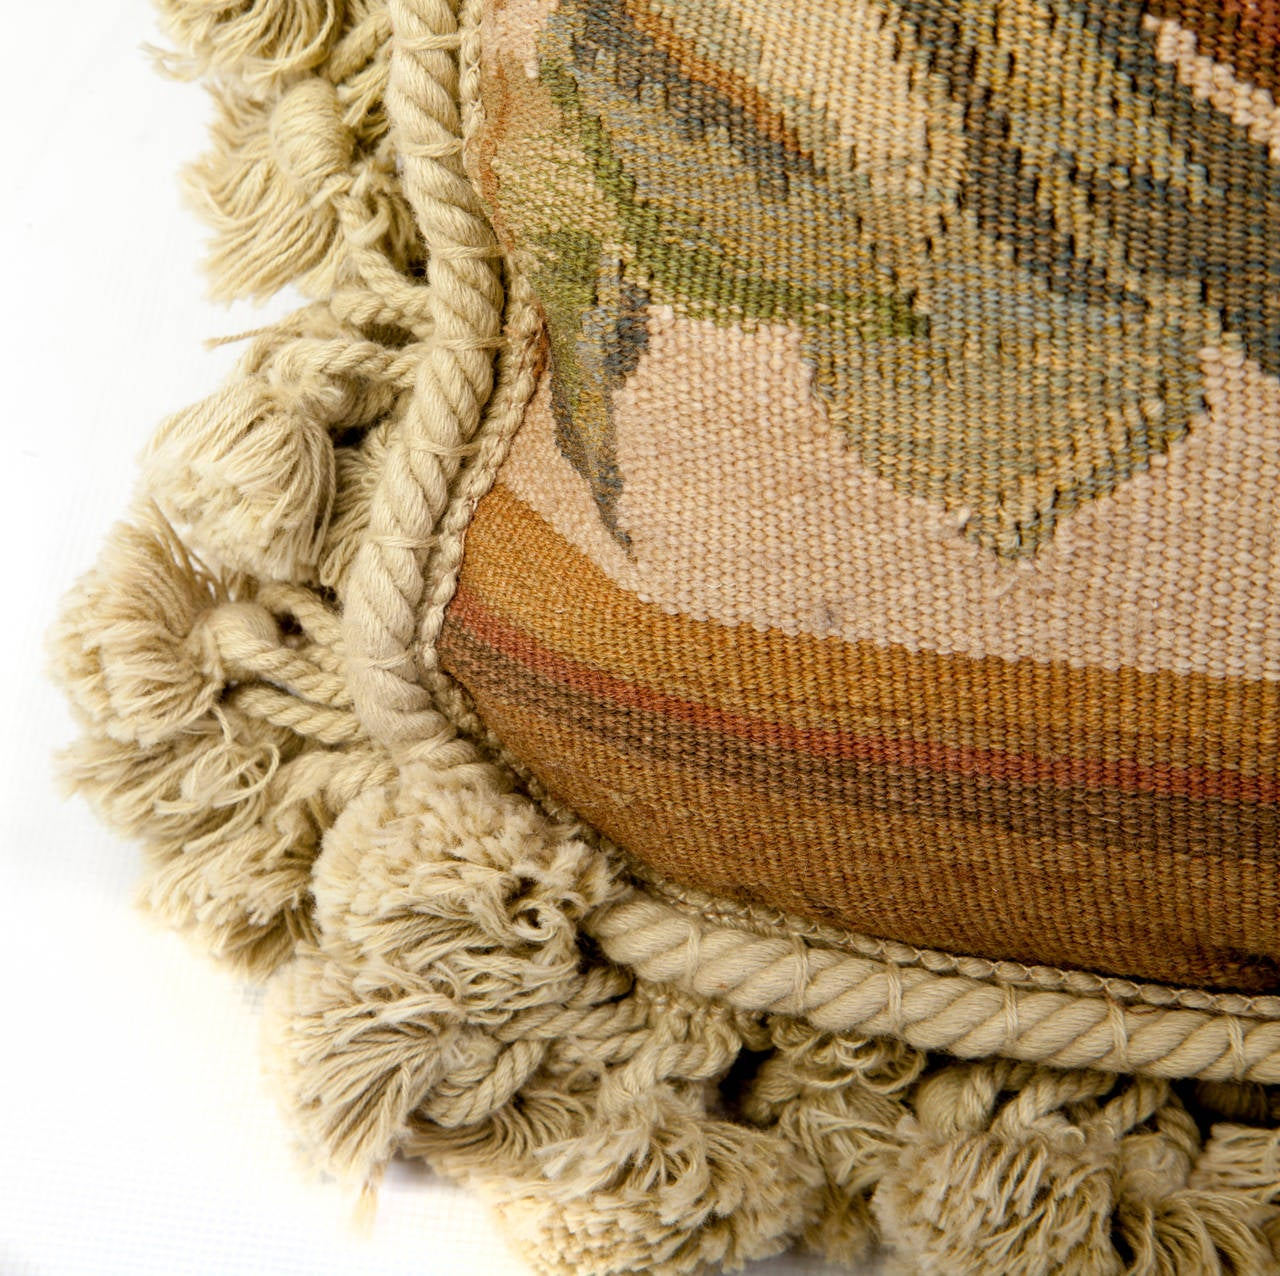 Mid 18oos, Aubusson Tapestry pillows, with updated velvet backing  and oniom fringe.